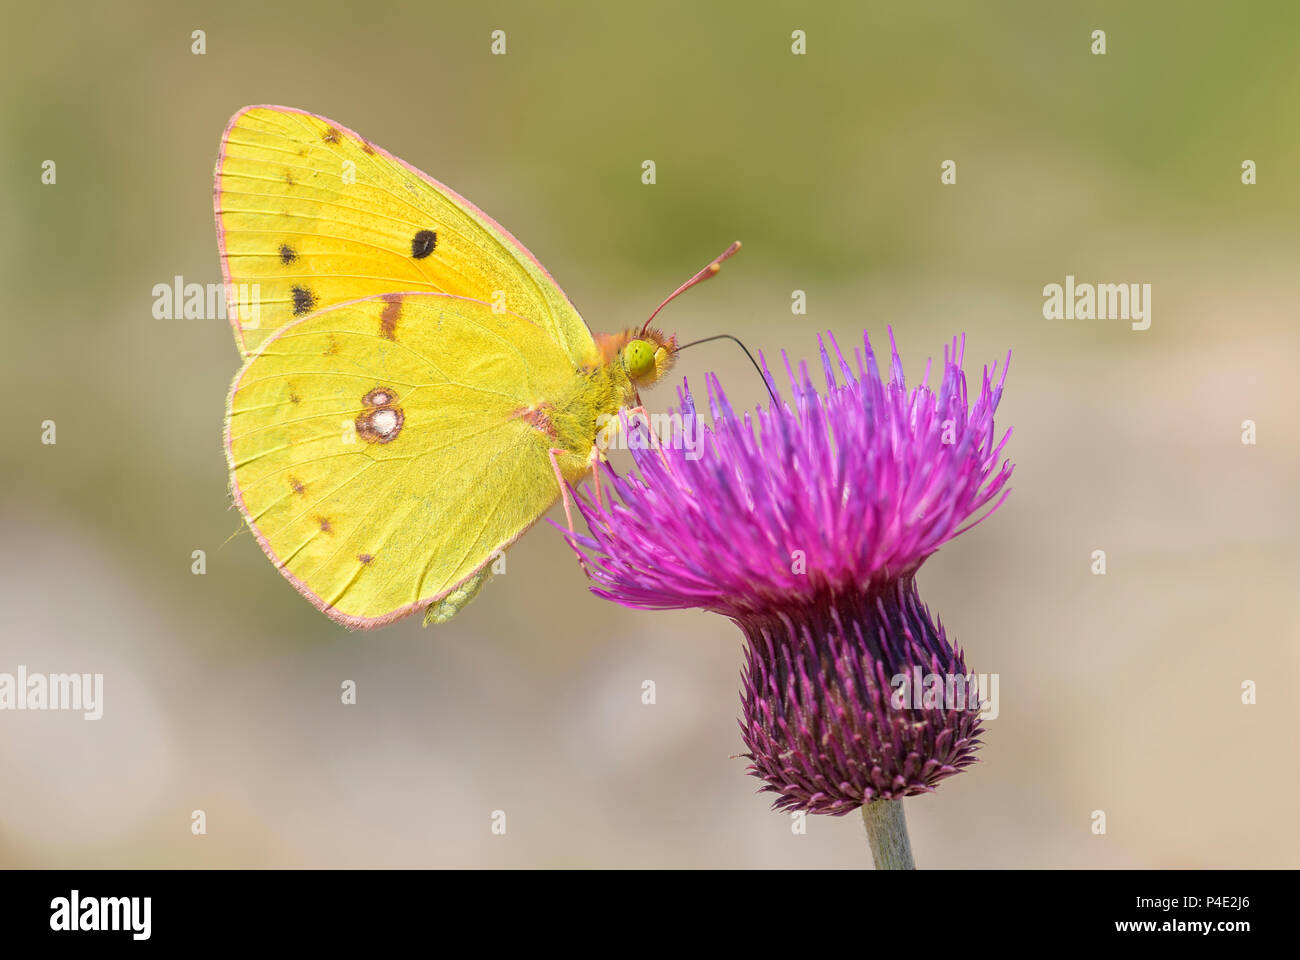 Berger's Clouded Yellow butterfly - Colias alfacariensis, beautiful large yellow butterfly from Eastern European meadows and grasslands. - Stock Image